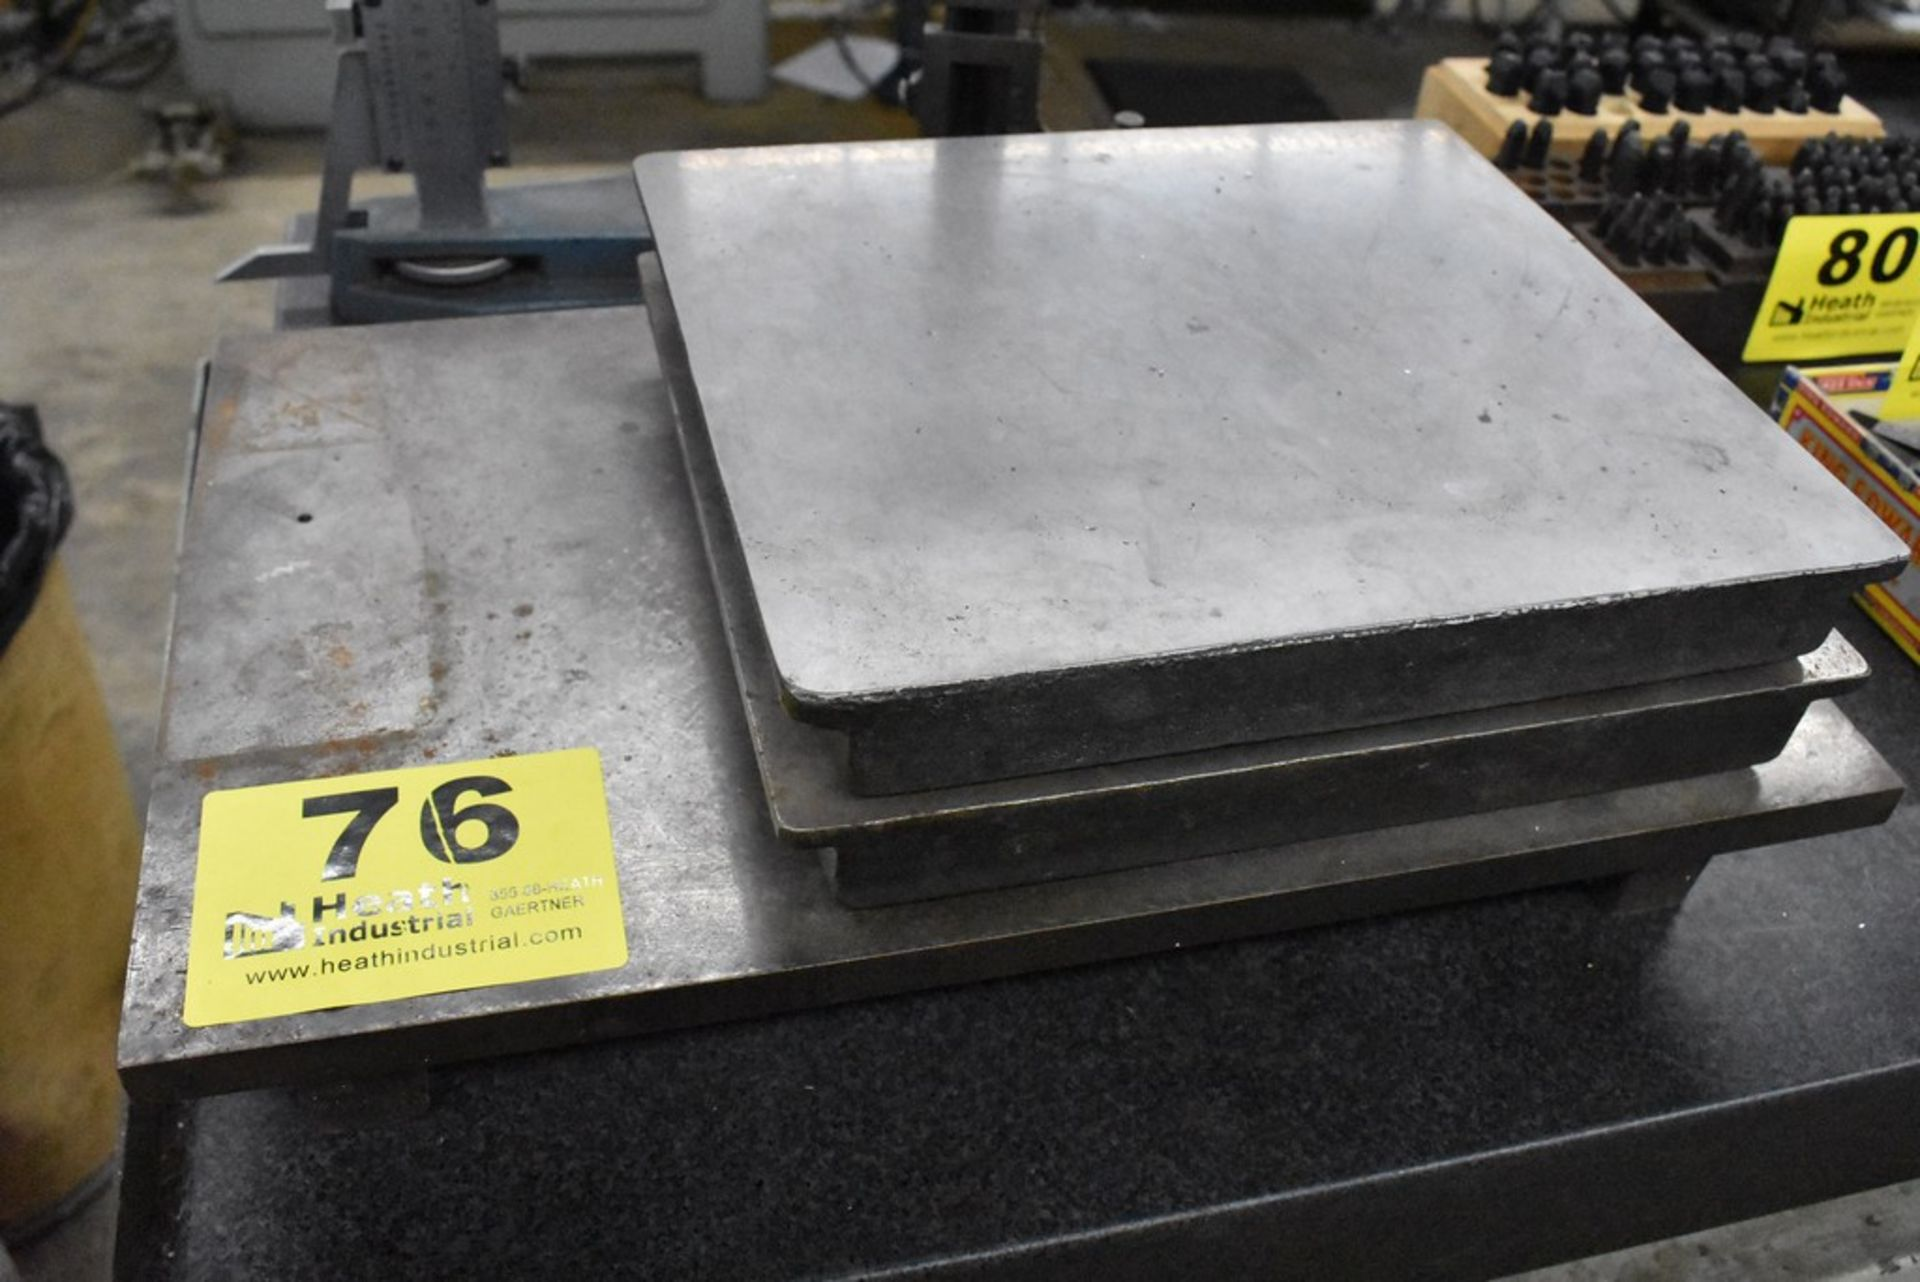 (3) ASSORTED CAST IRON SURFACE PLATES - Image 2 of 2